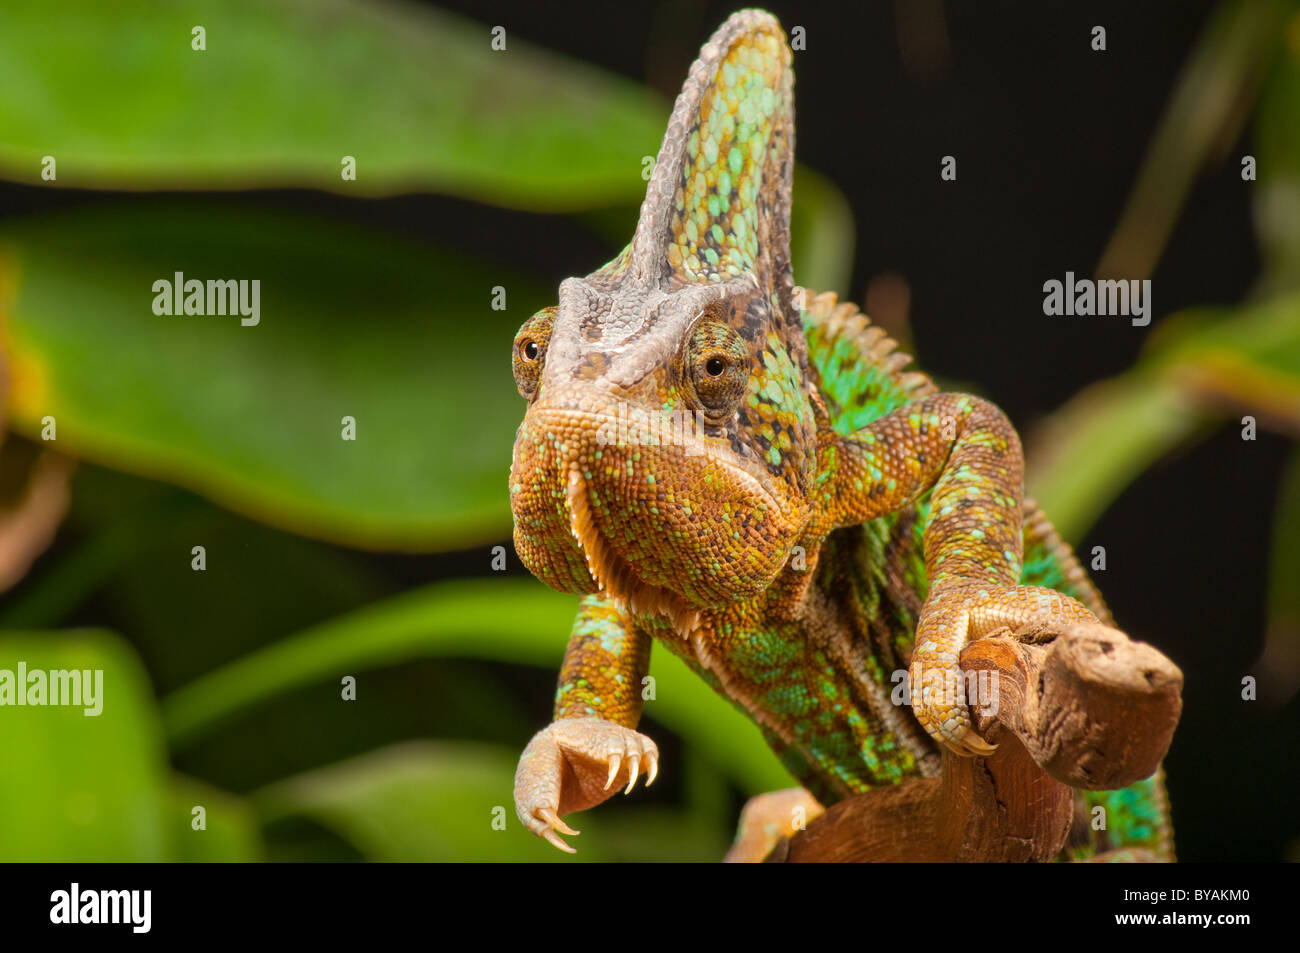 Chameleon facing camera reaching out with claw - Stock Image